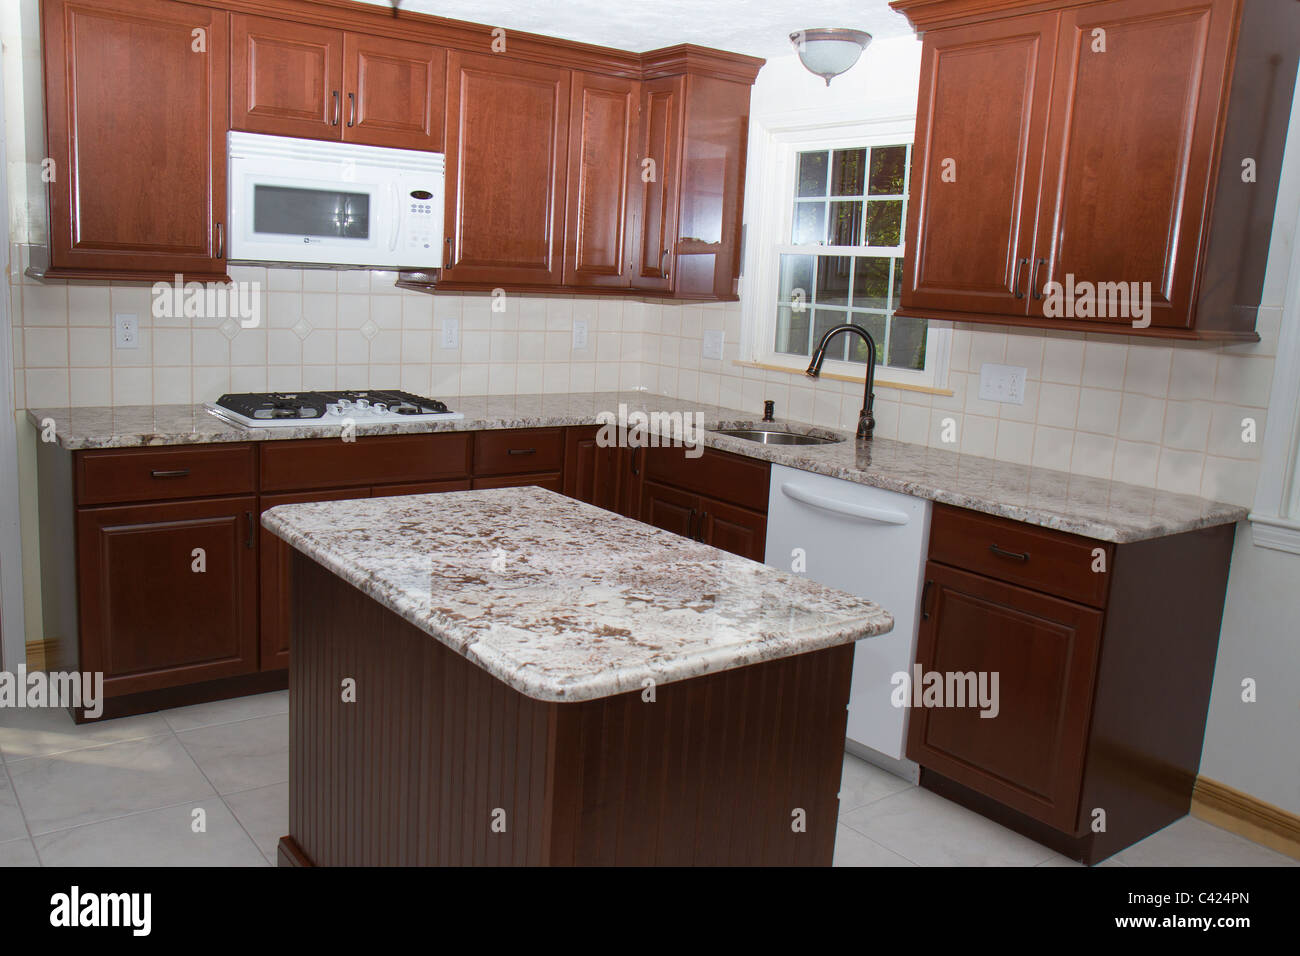 https www alamy com stock photo new cherry cabinets granite counter tops and ceramic tile floor highlight 36927037 html